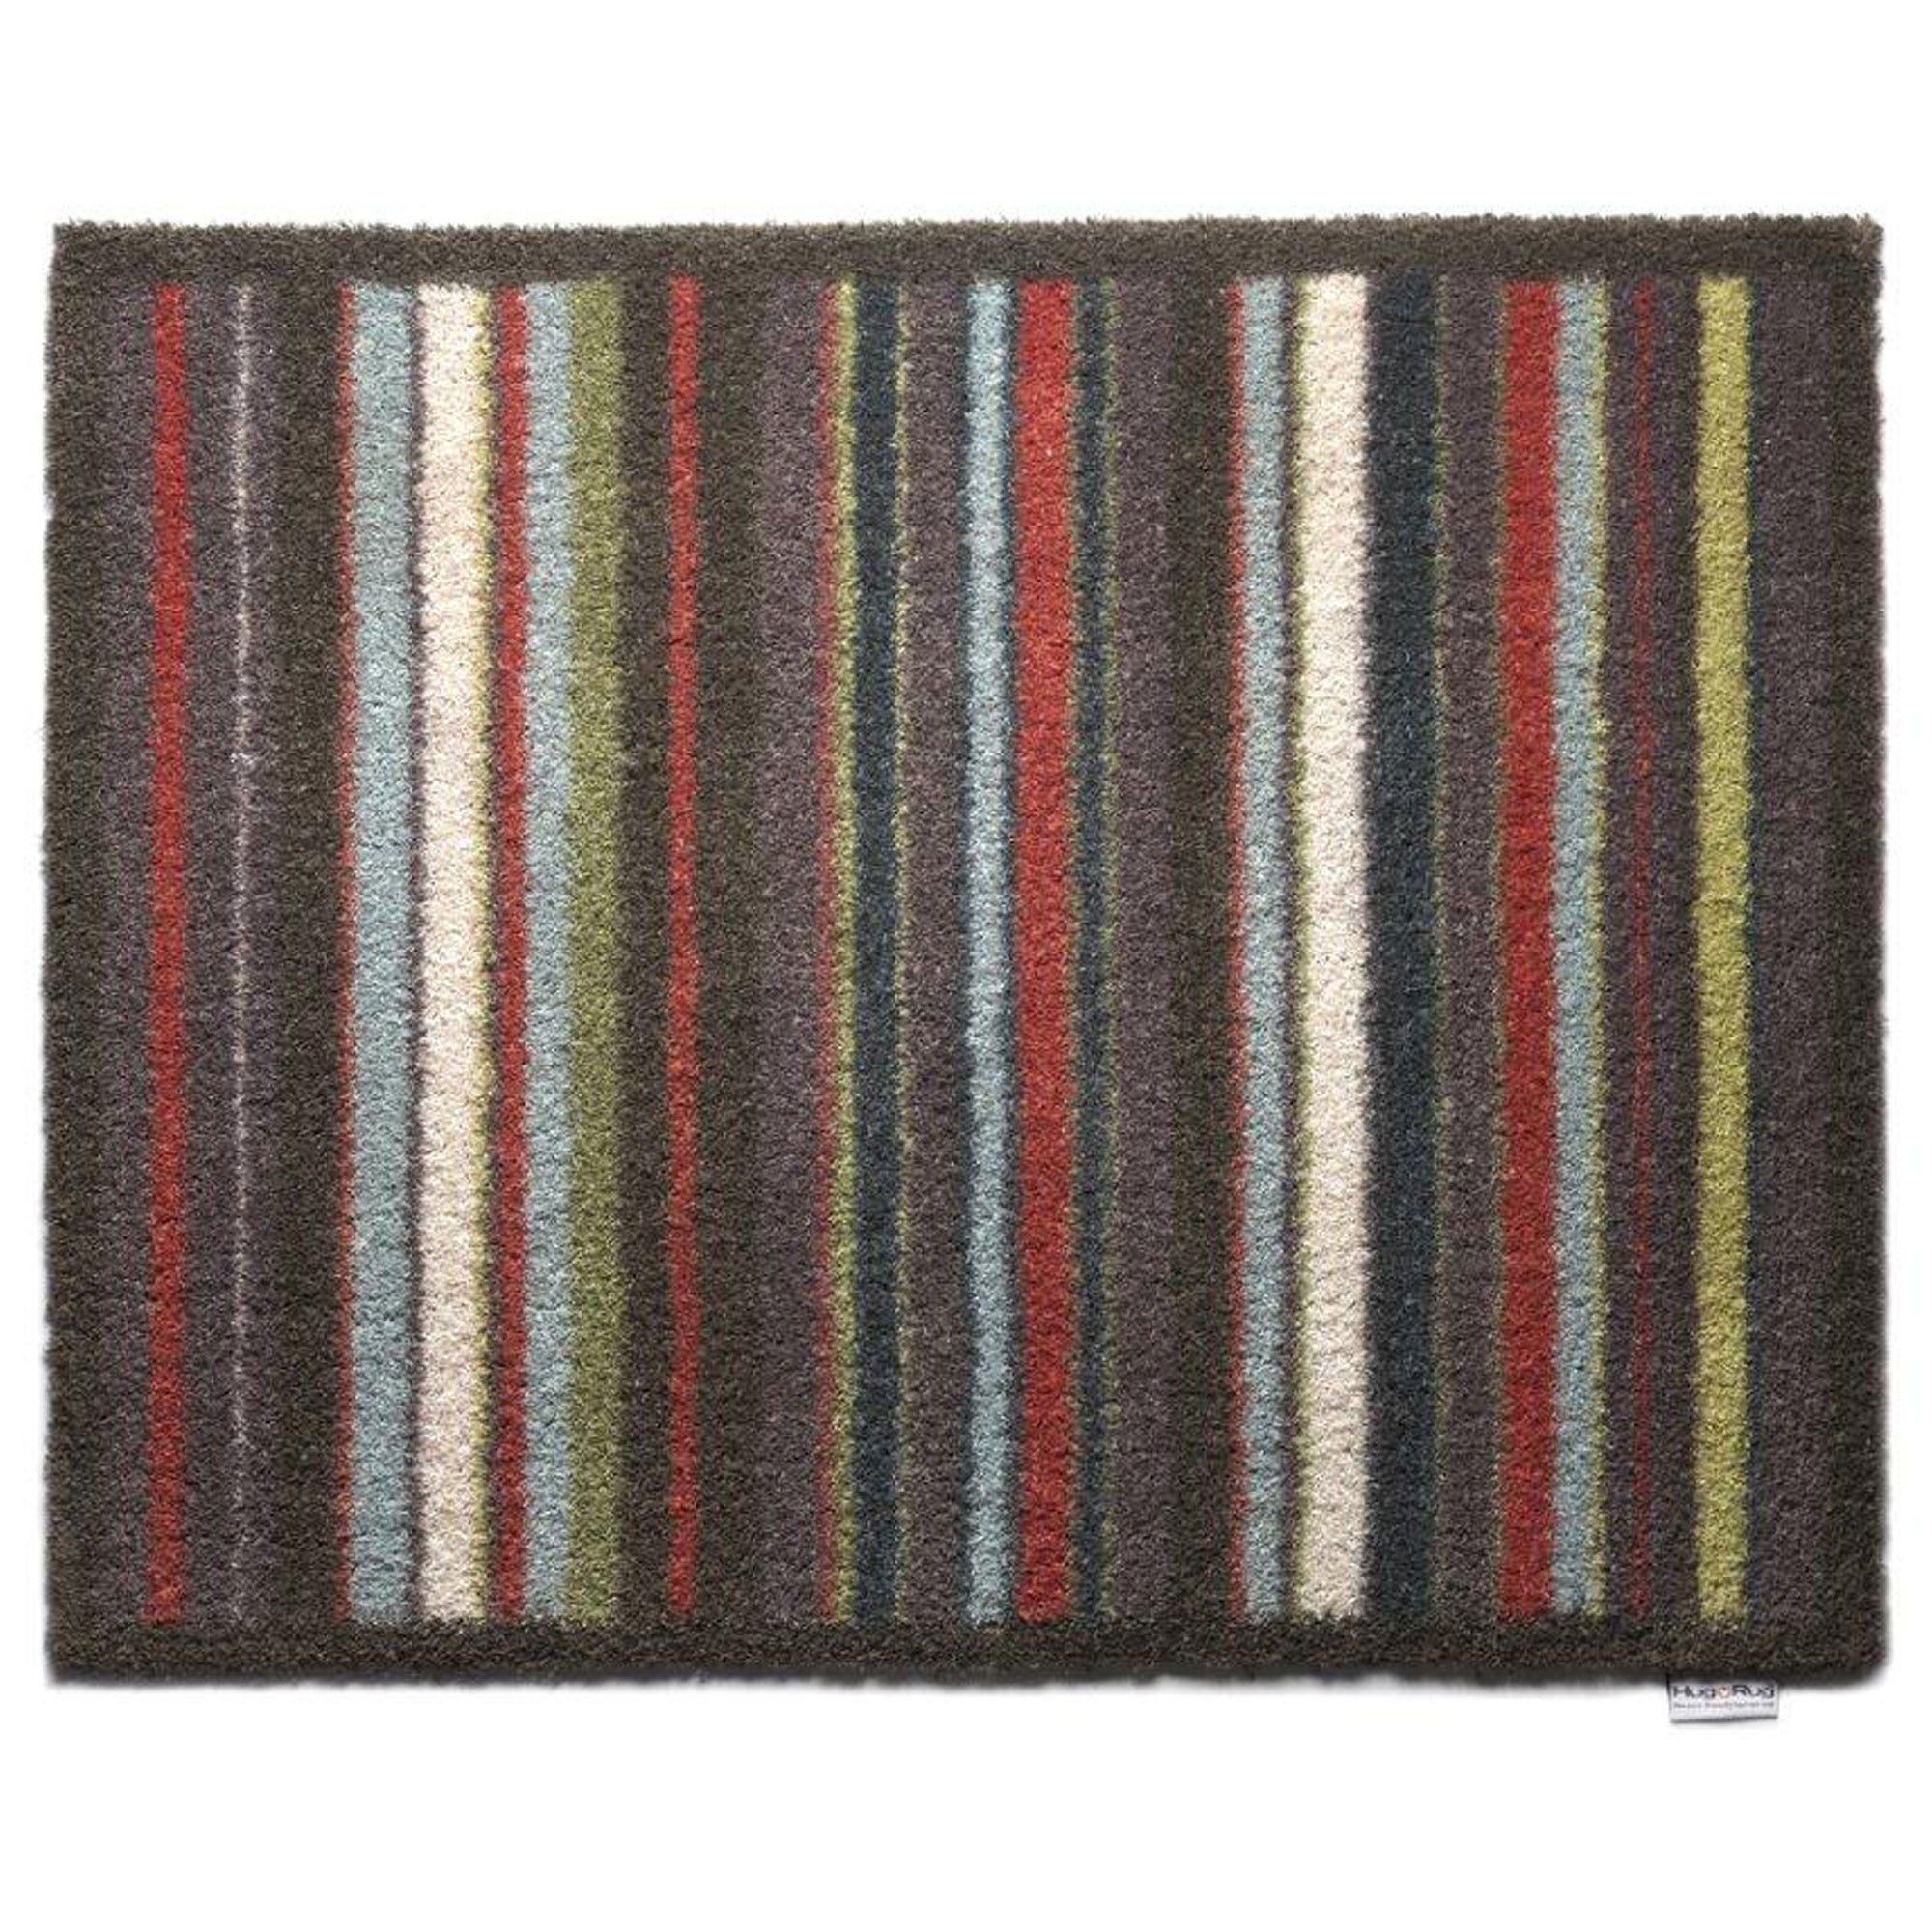 Compare prices for Hug Rug 65 x 85cm Stripe Doormat - Cool